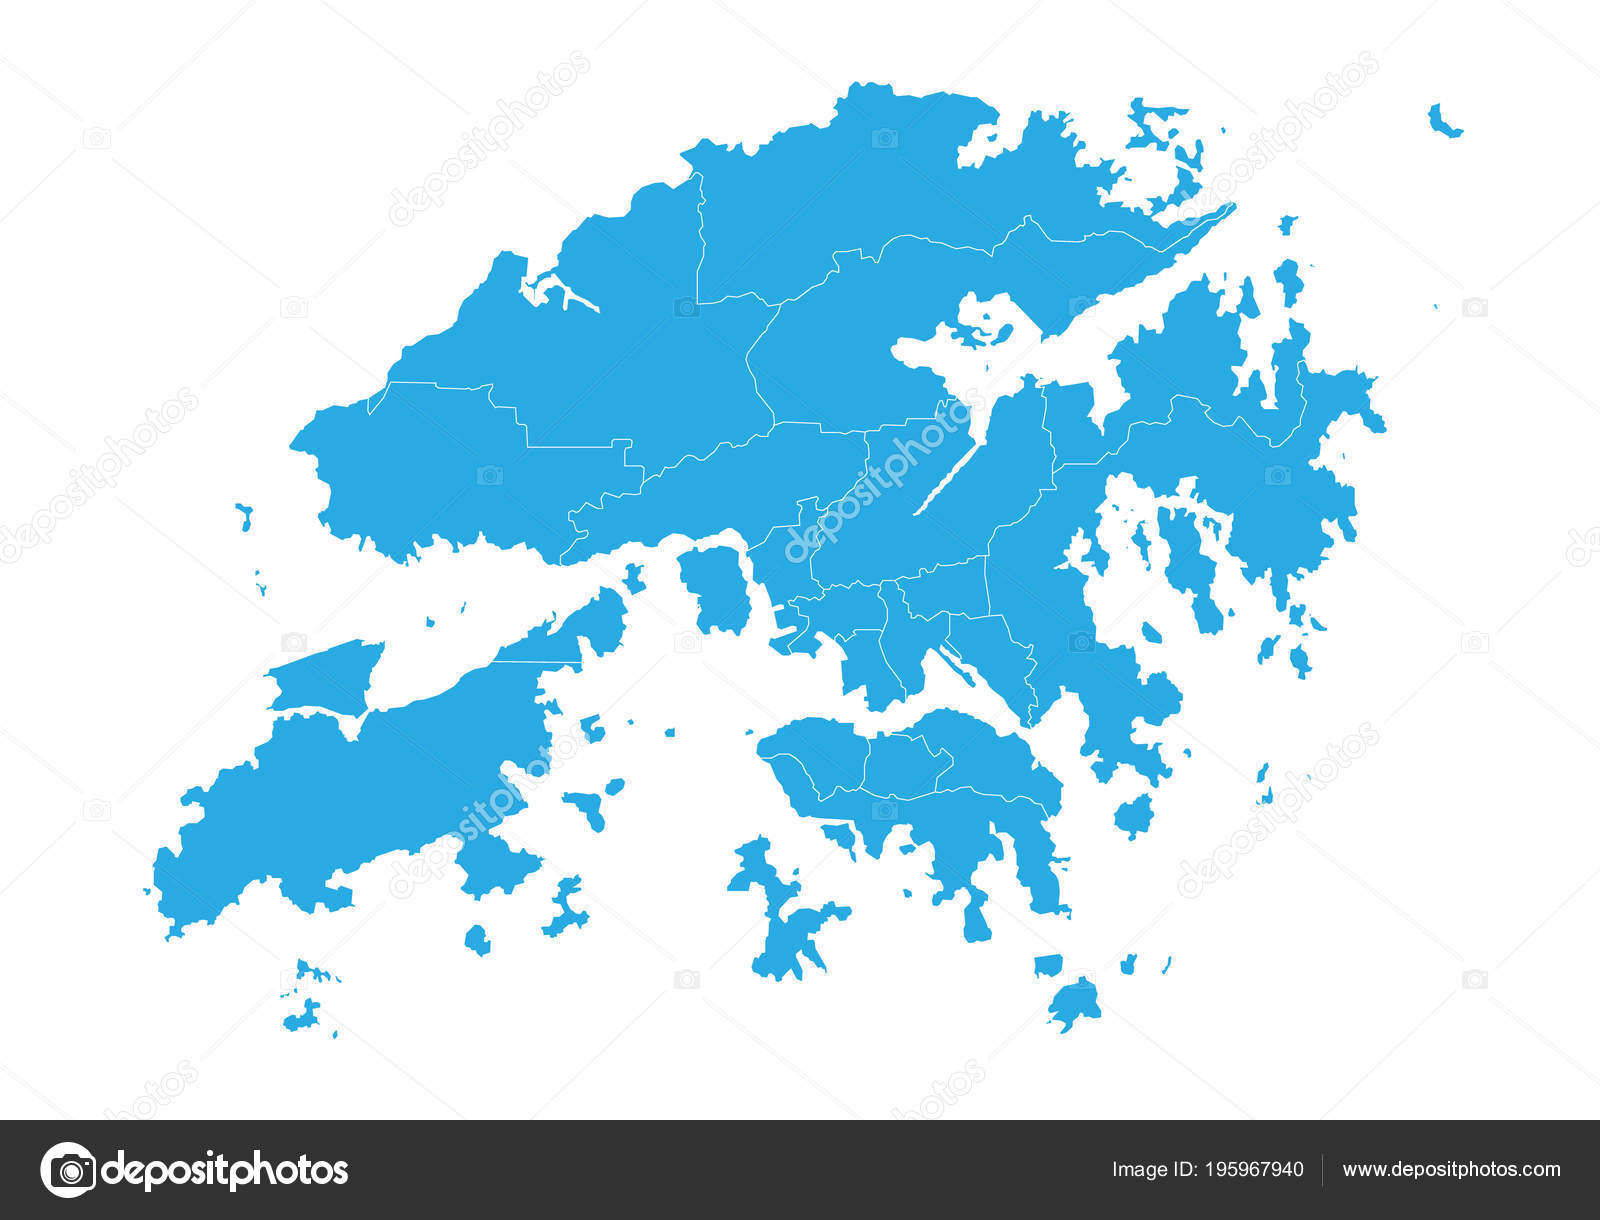 Hong Kong Maps Attractions Streets Roads And Transport Map